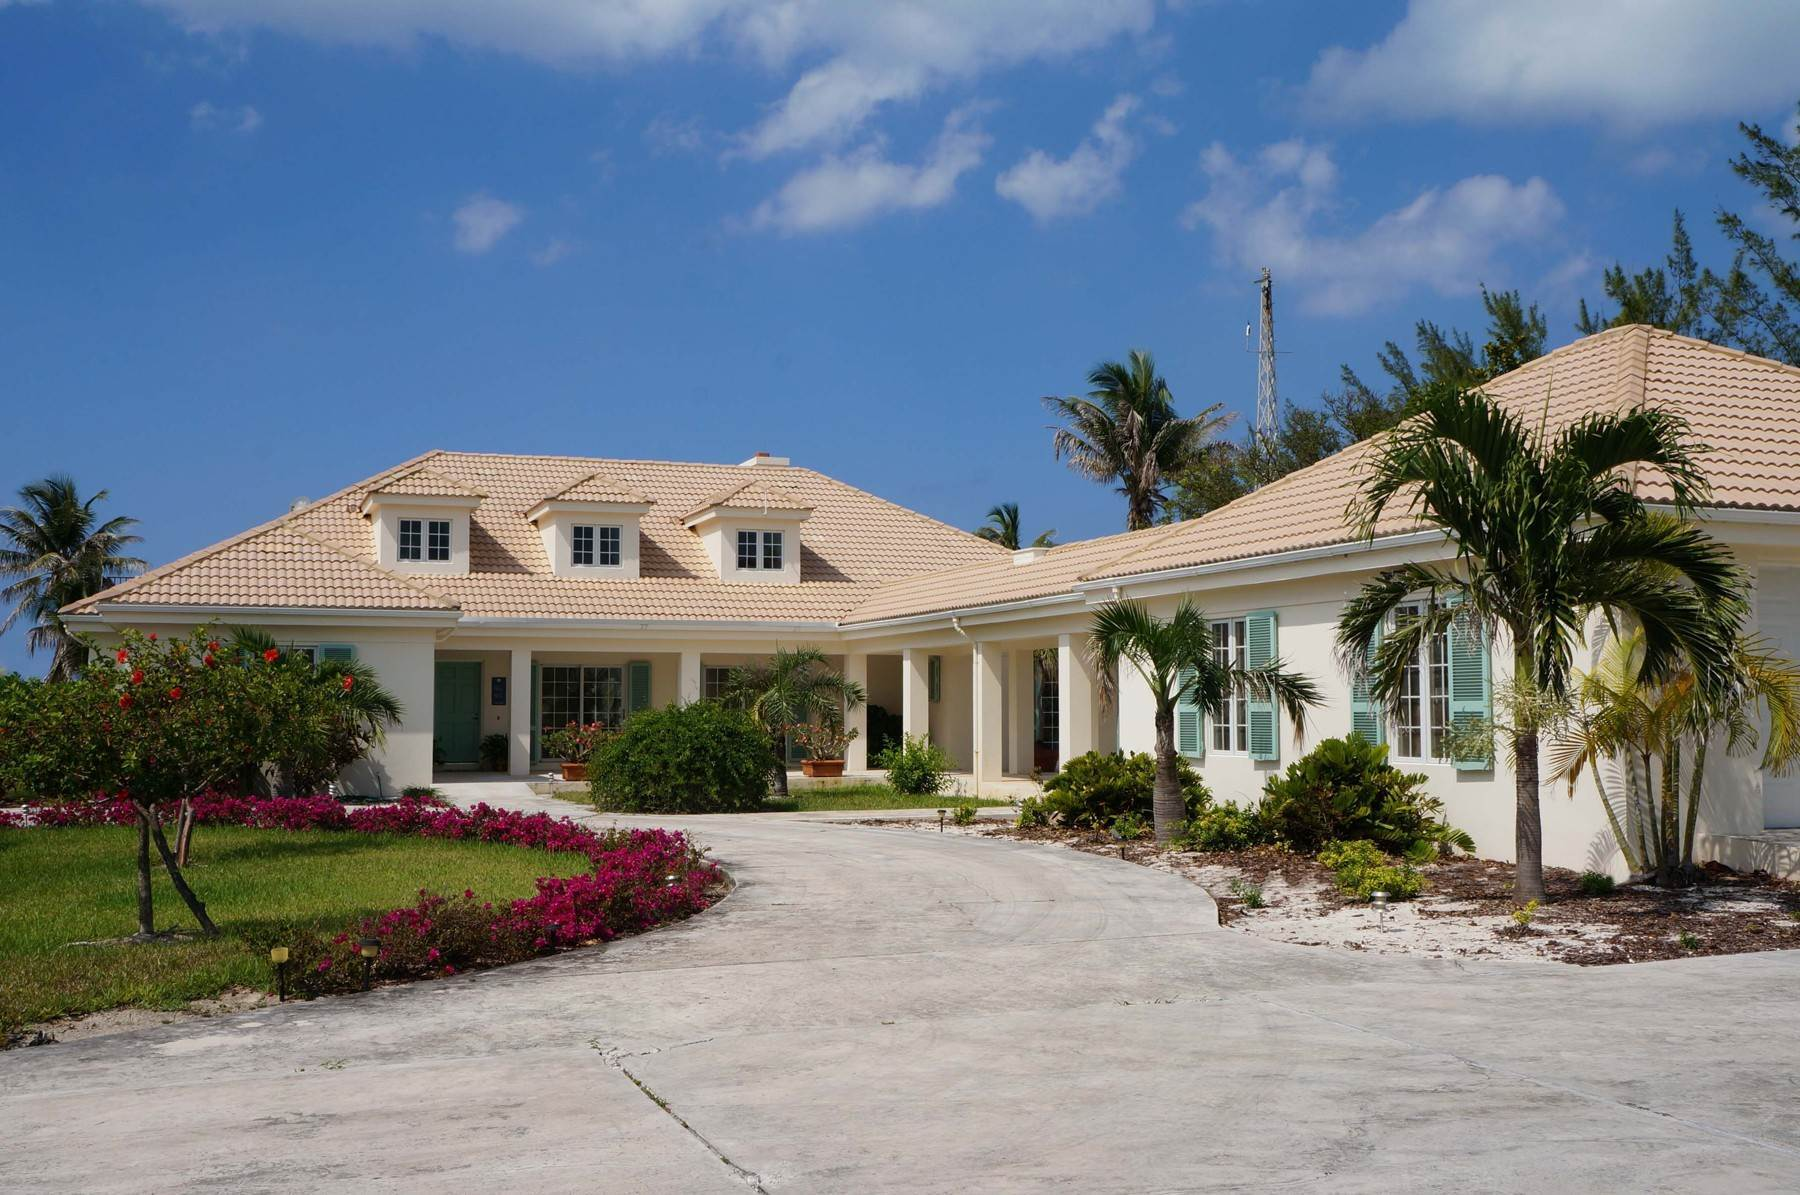 Single Family Homes for Sale at Freedom - Beachfront Home Spanish Wells, Eleuthera Bahamas